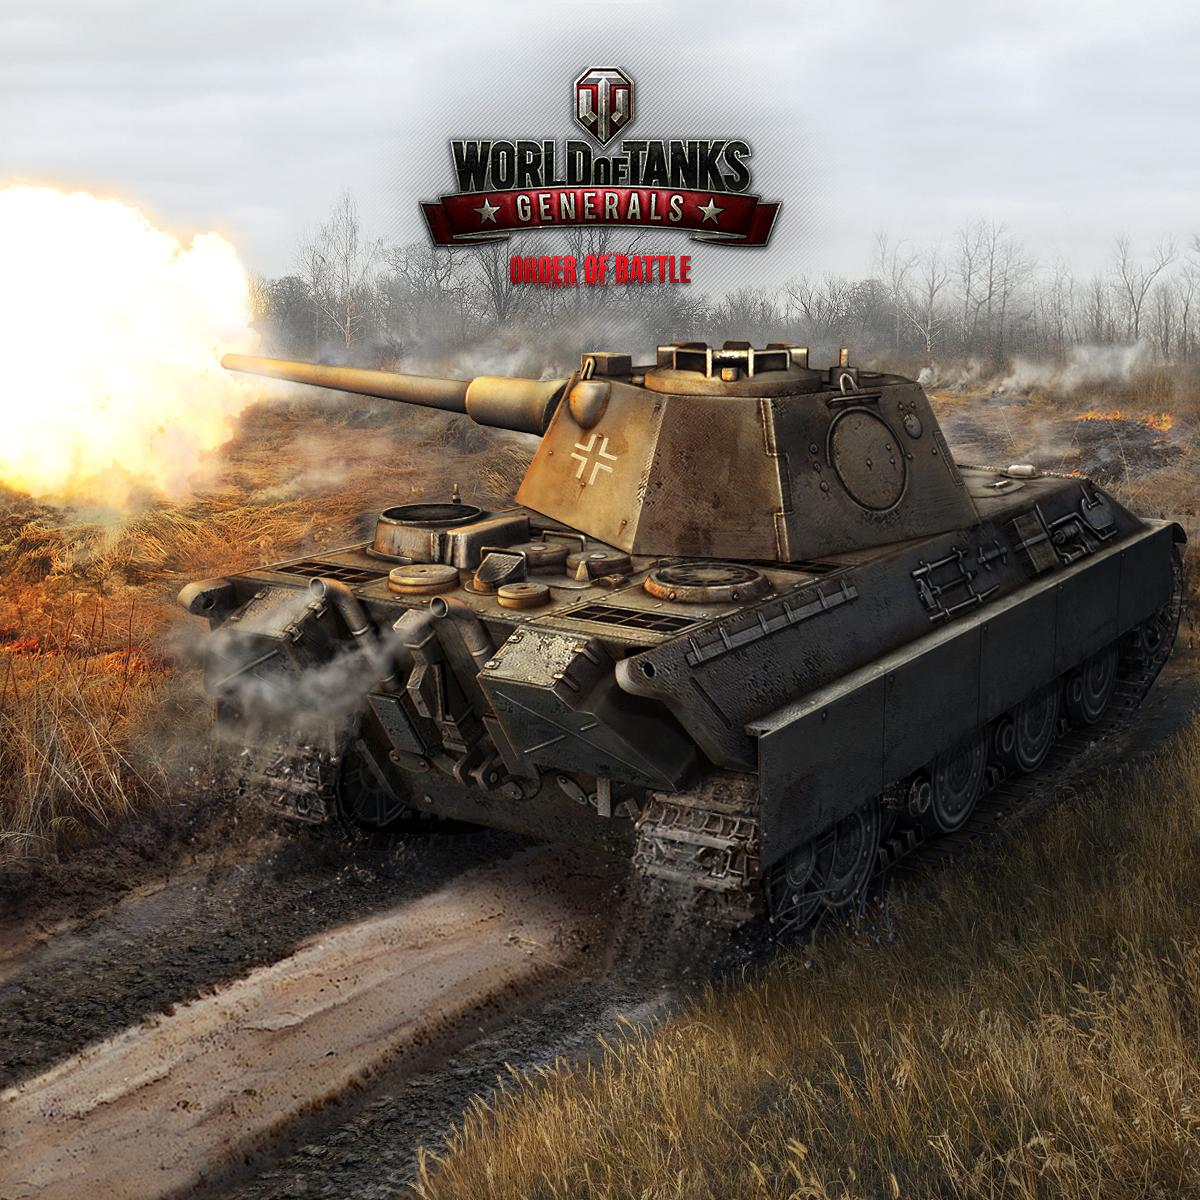 We have some World of Tanks Generals (UK ONLY) Beta keys to give away! Hit those Fav and RT buttons to receive one :) http://t.co/8v24WcVDGD